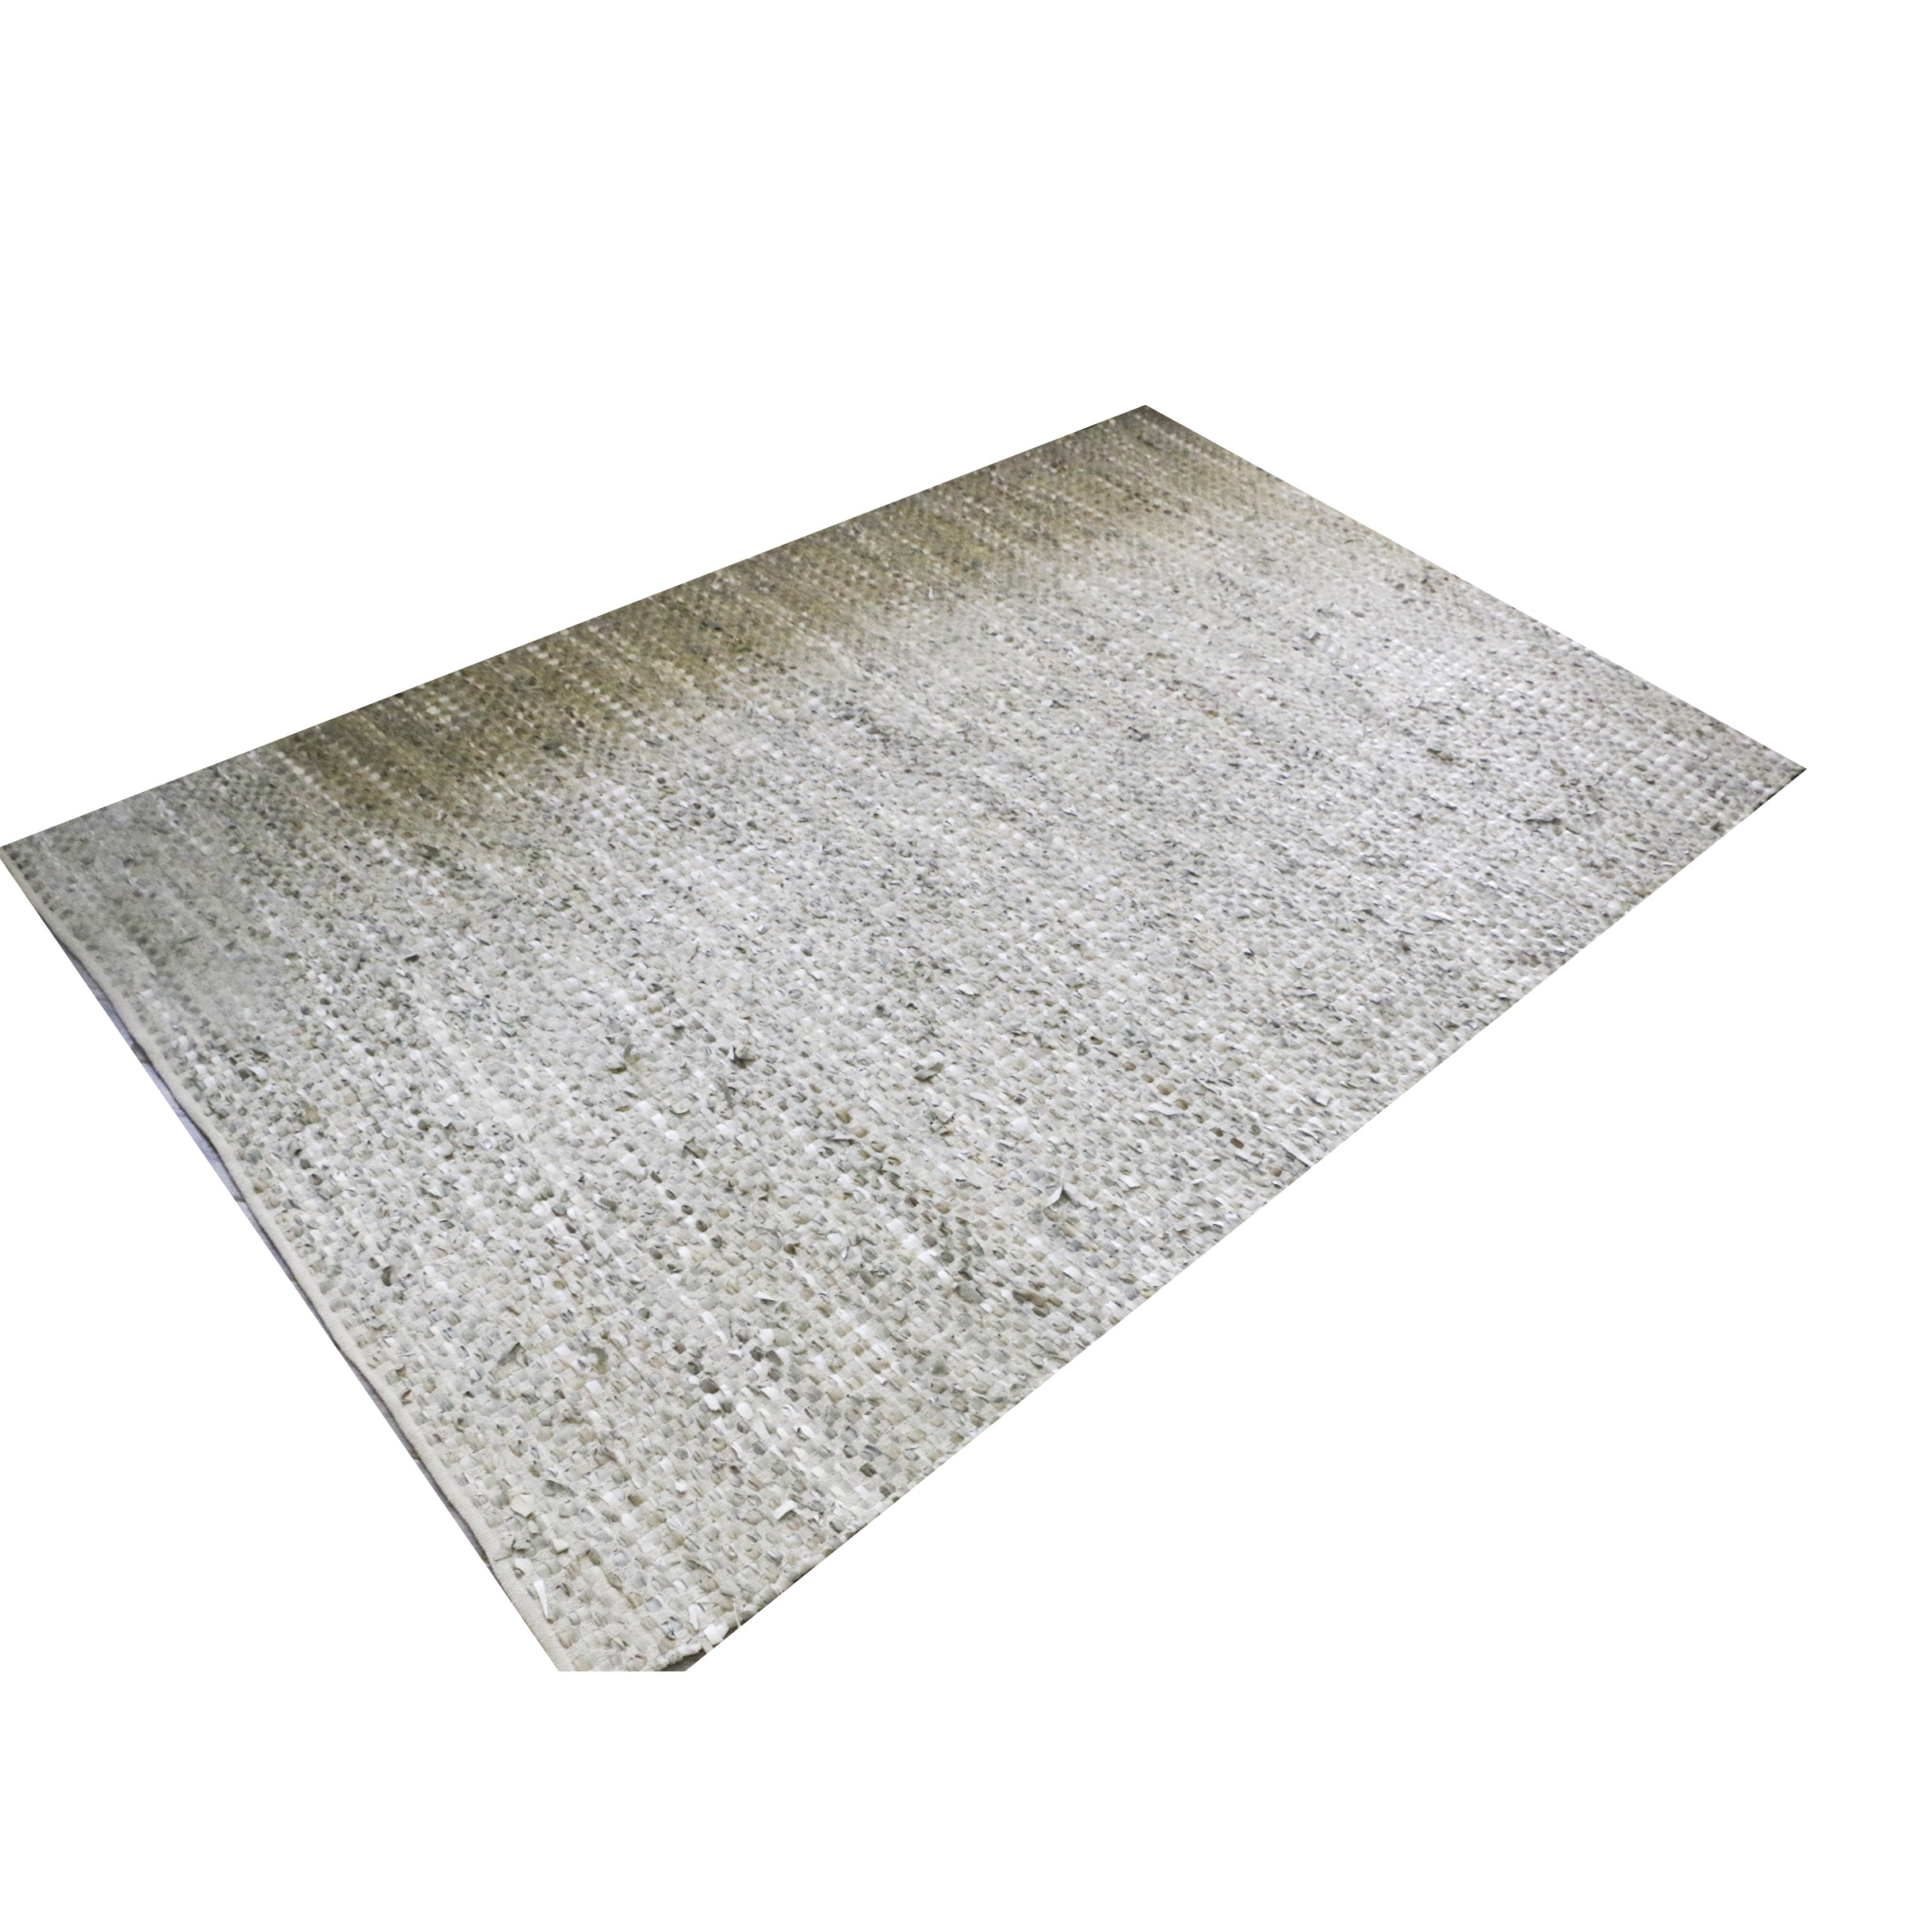 Handwoven Textured Leather and Cotton Rug